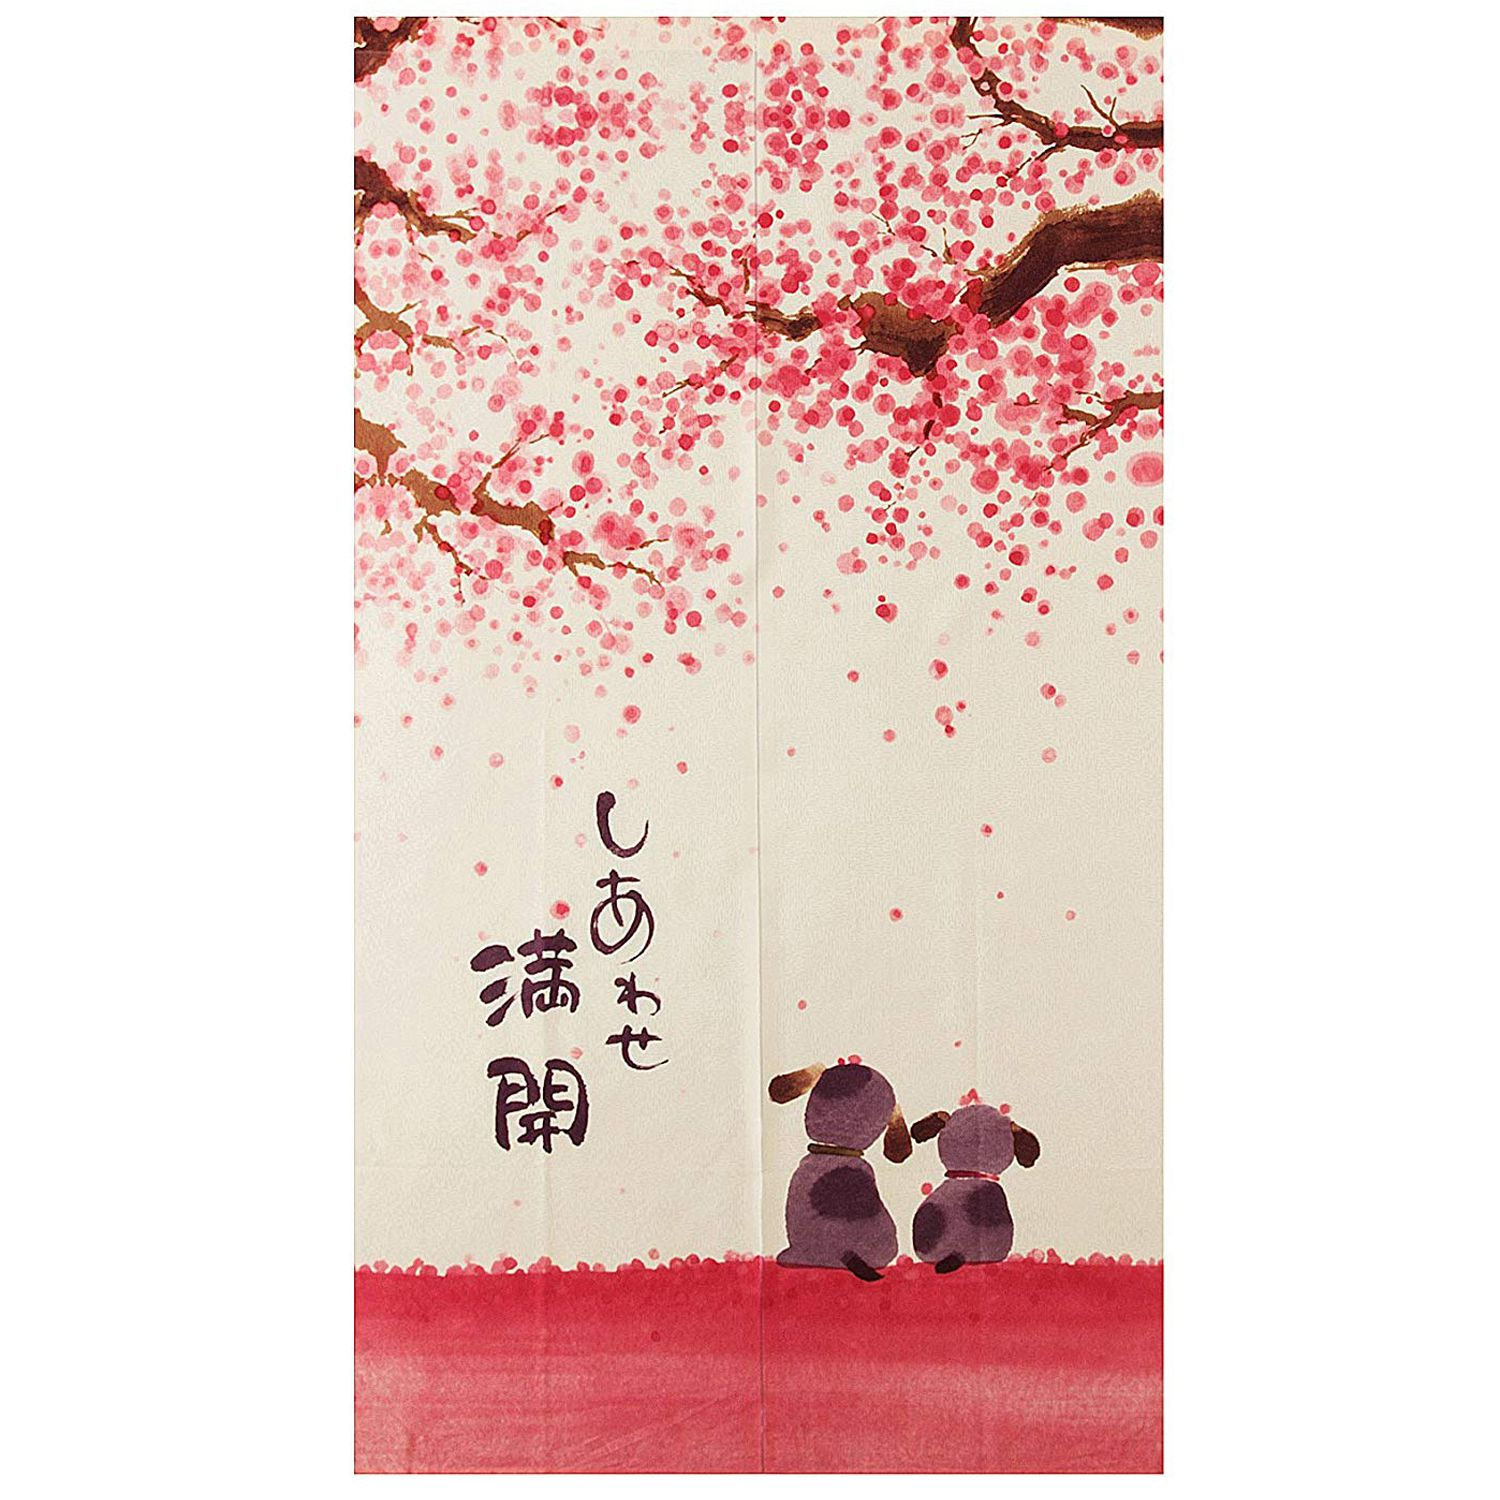 EASY-Japanese Style Doorway Curtain 85X150Cm Happy Dogs Cherry Blossom